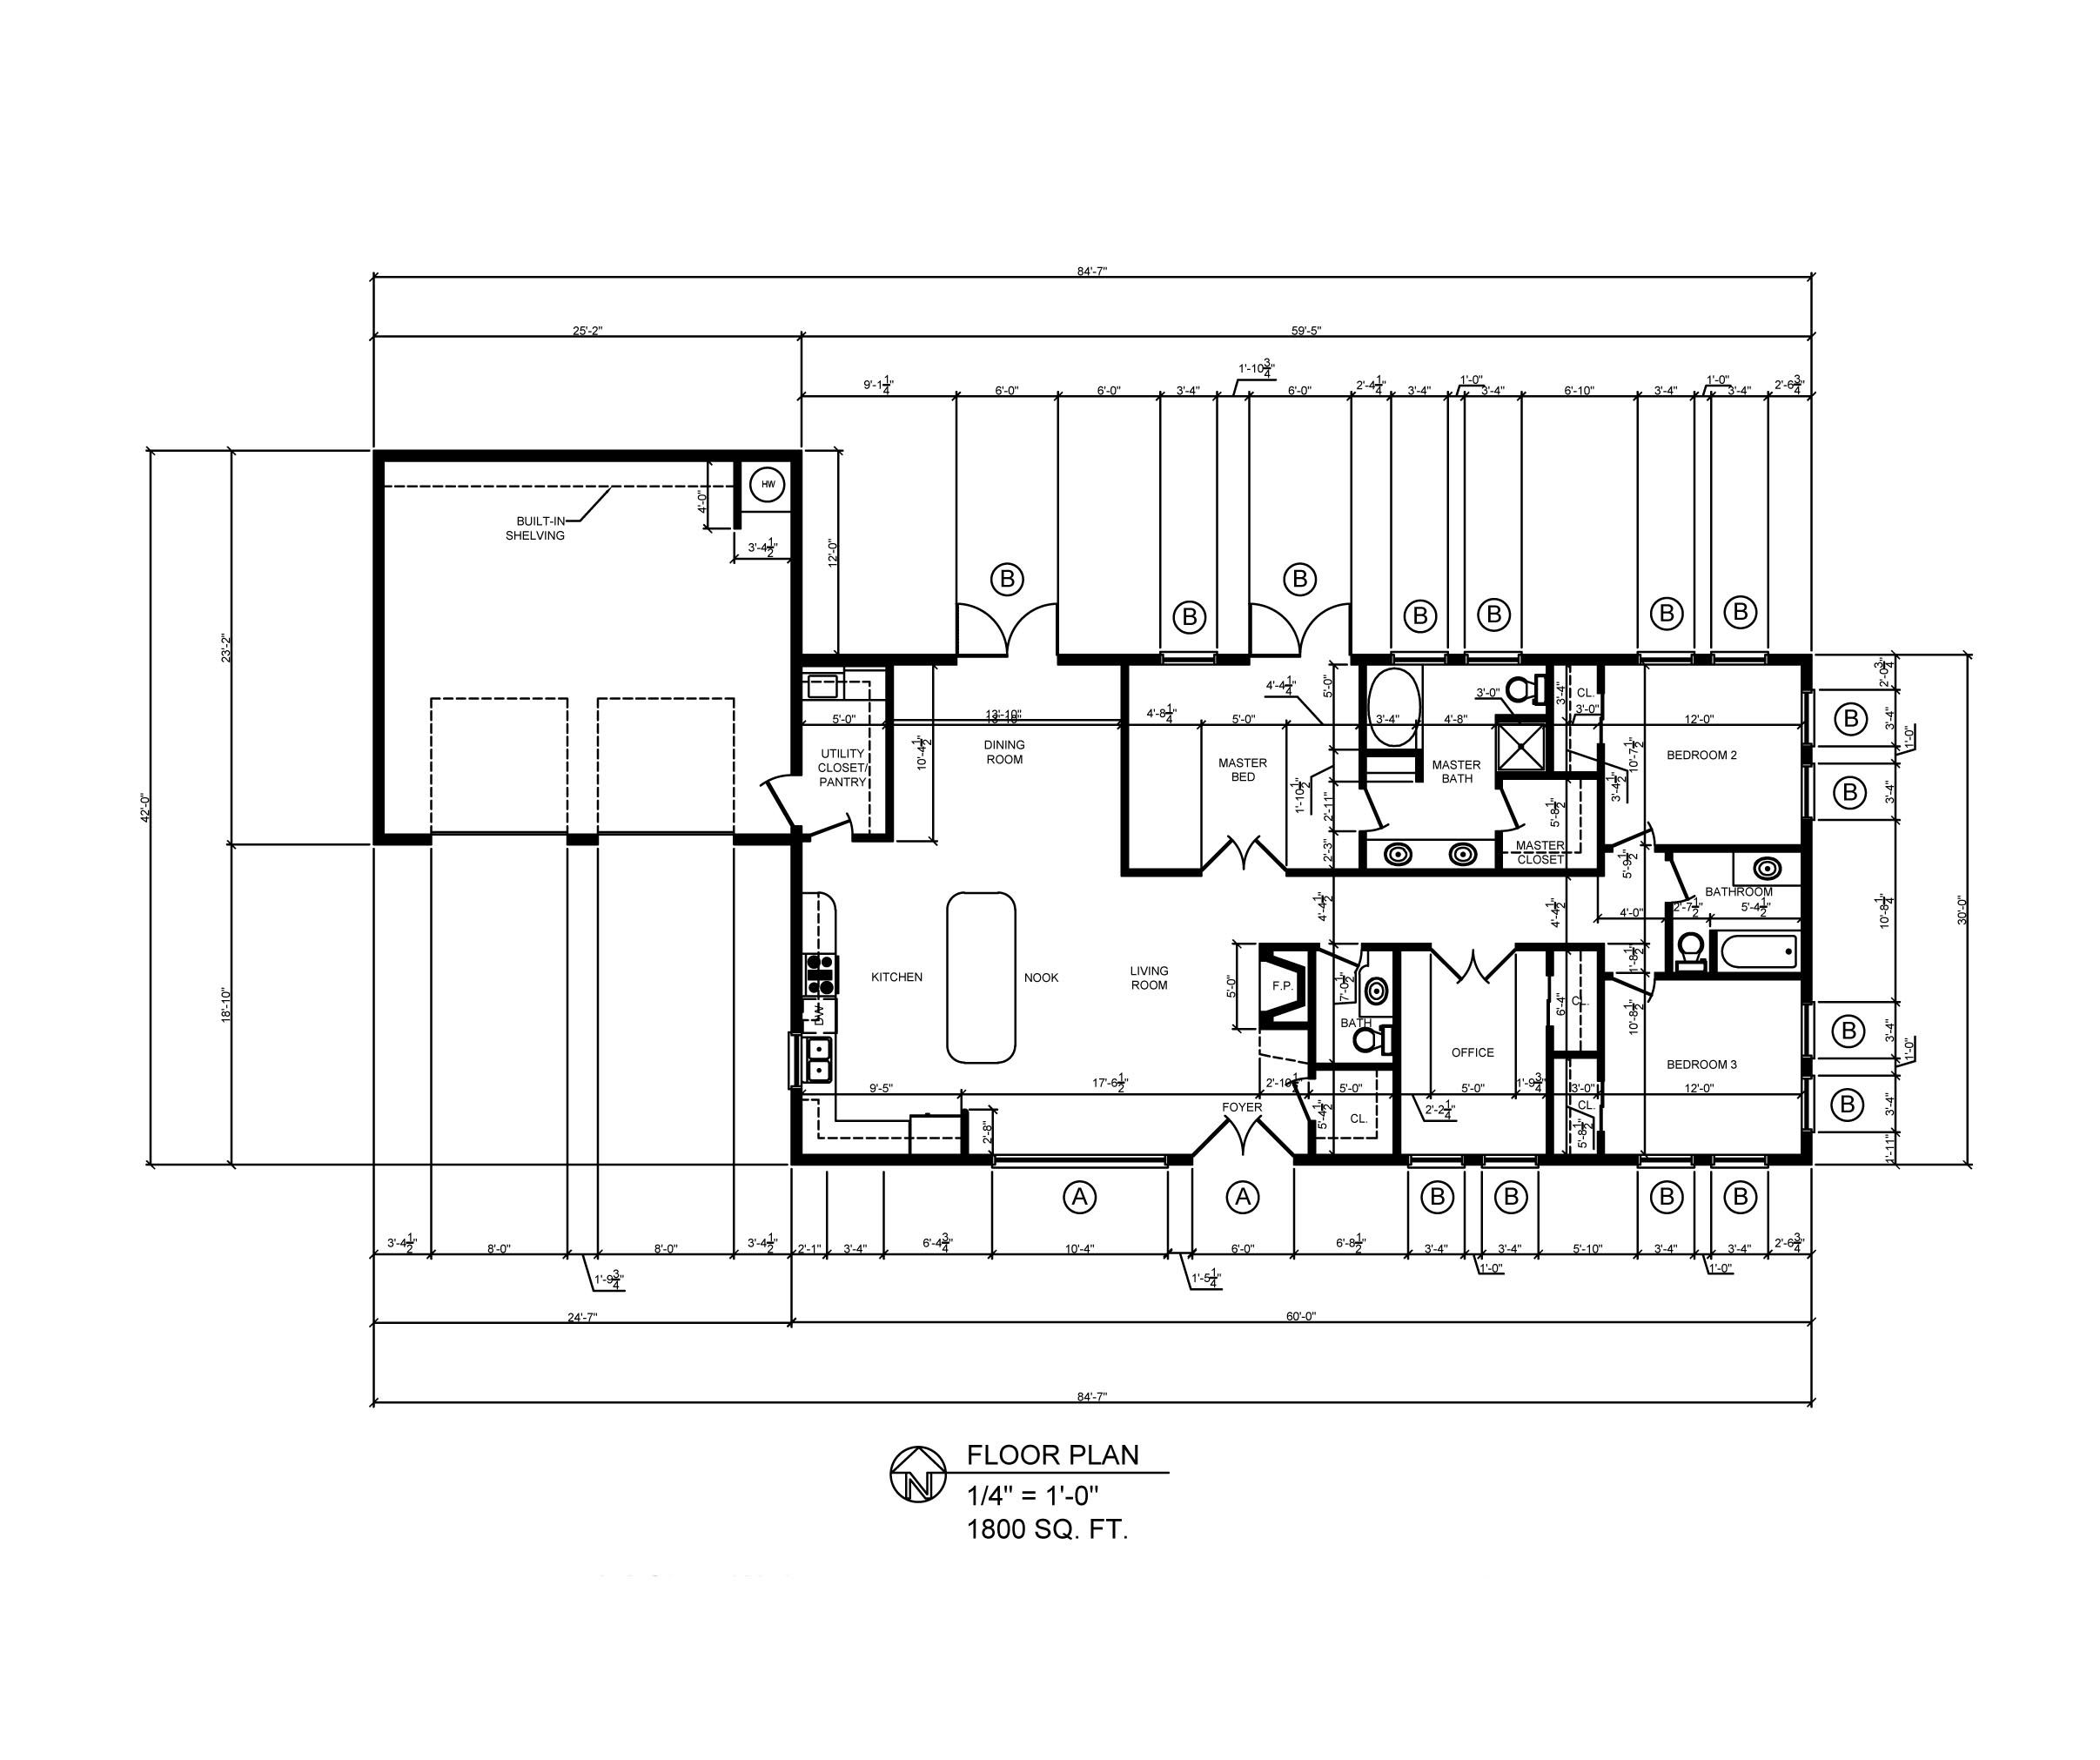 Staircase Plans Drawing Autocad Architectural Drawings Stairs Pinned By Www